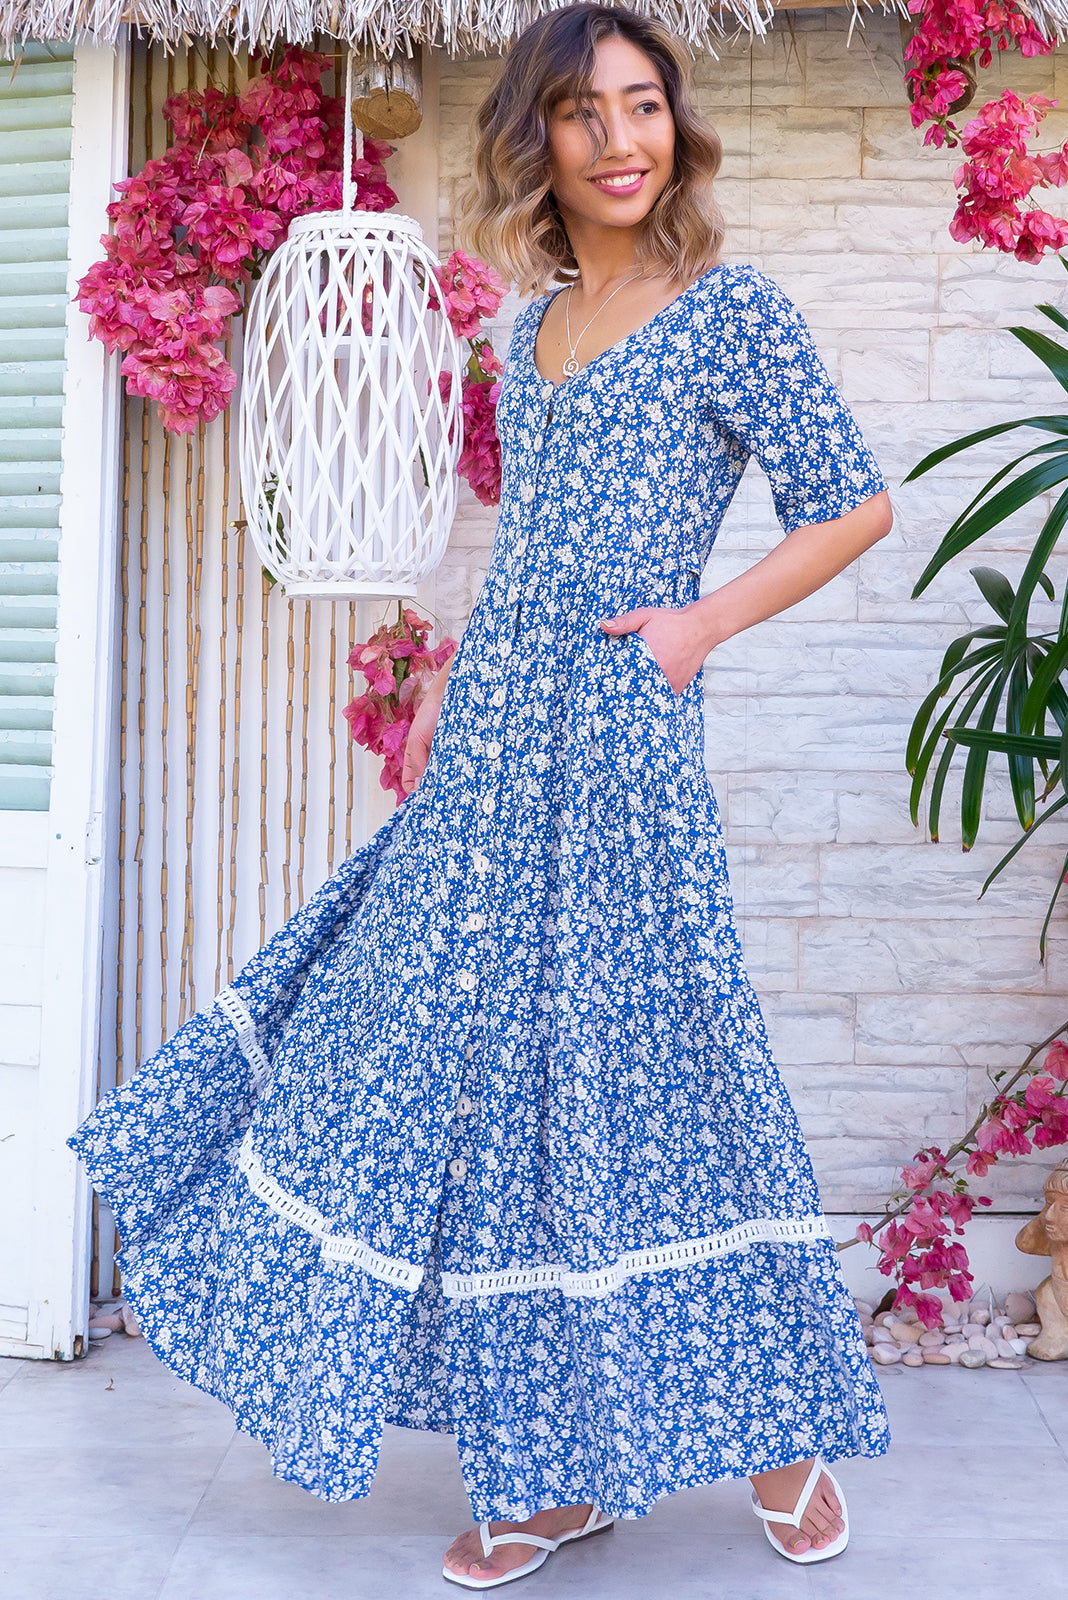 The Georgiana Blue Jay Maxi Dress features functional button front, buttons and side tabs at waist, side pockets, tiered skirt with lace insert and 100% rayon in blue base with white daisy print.